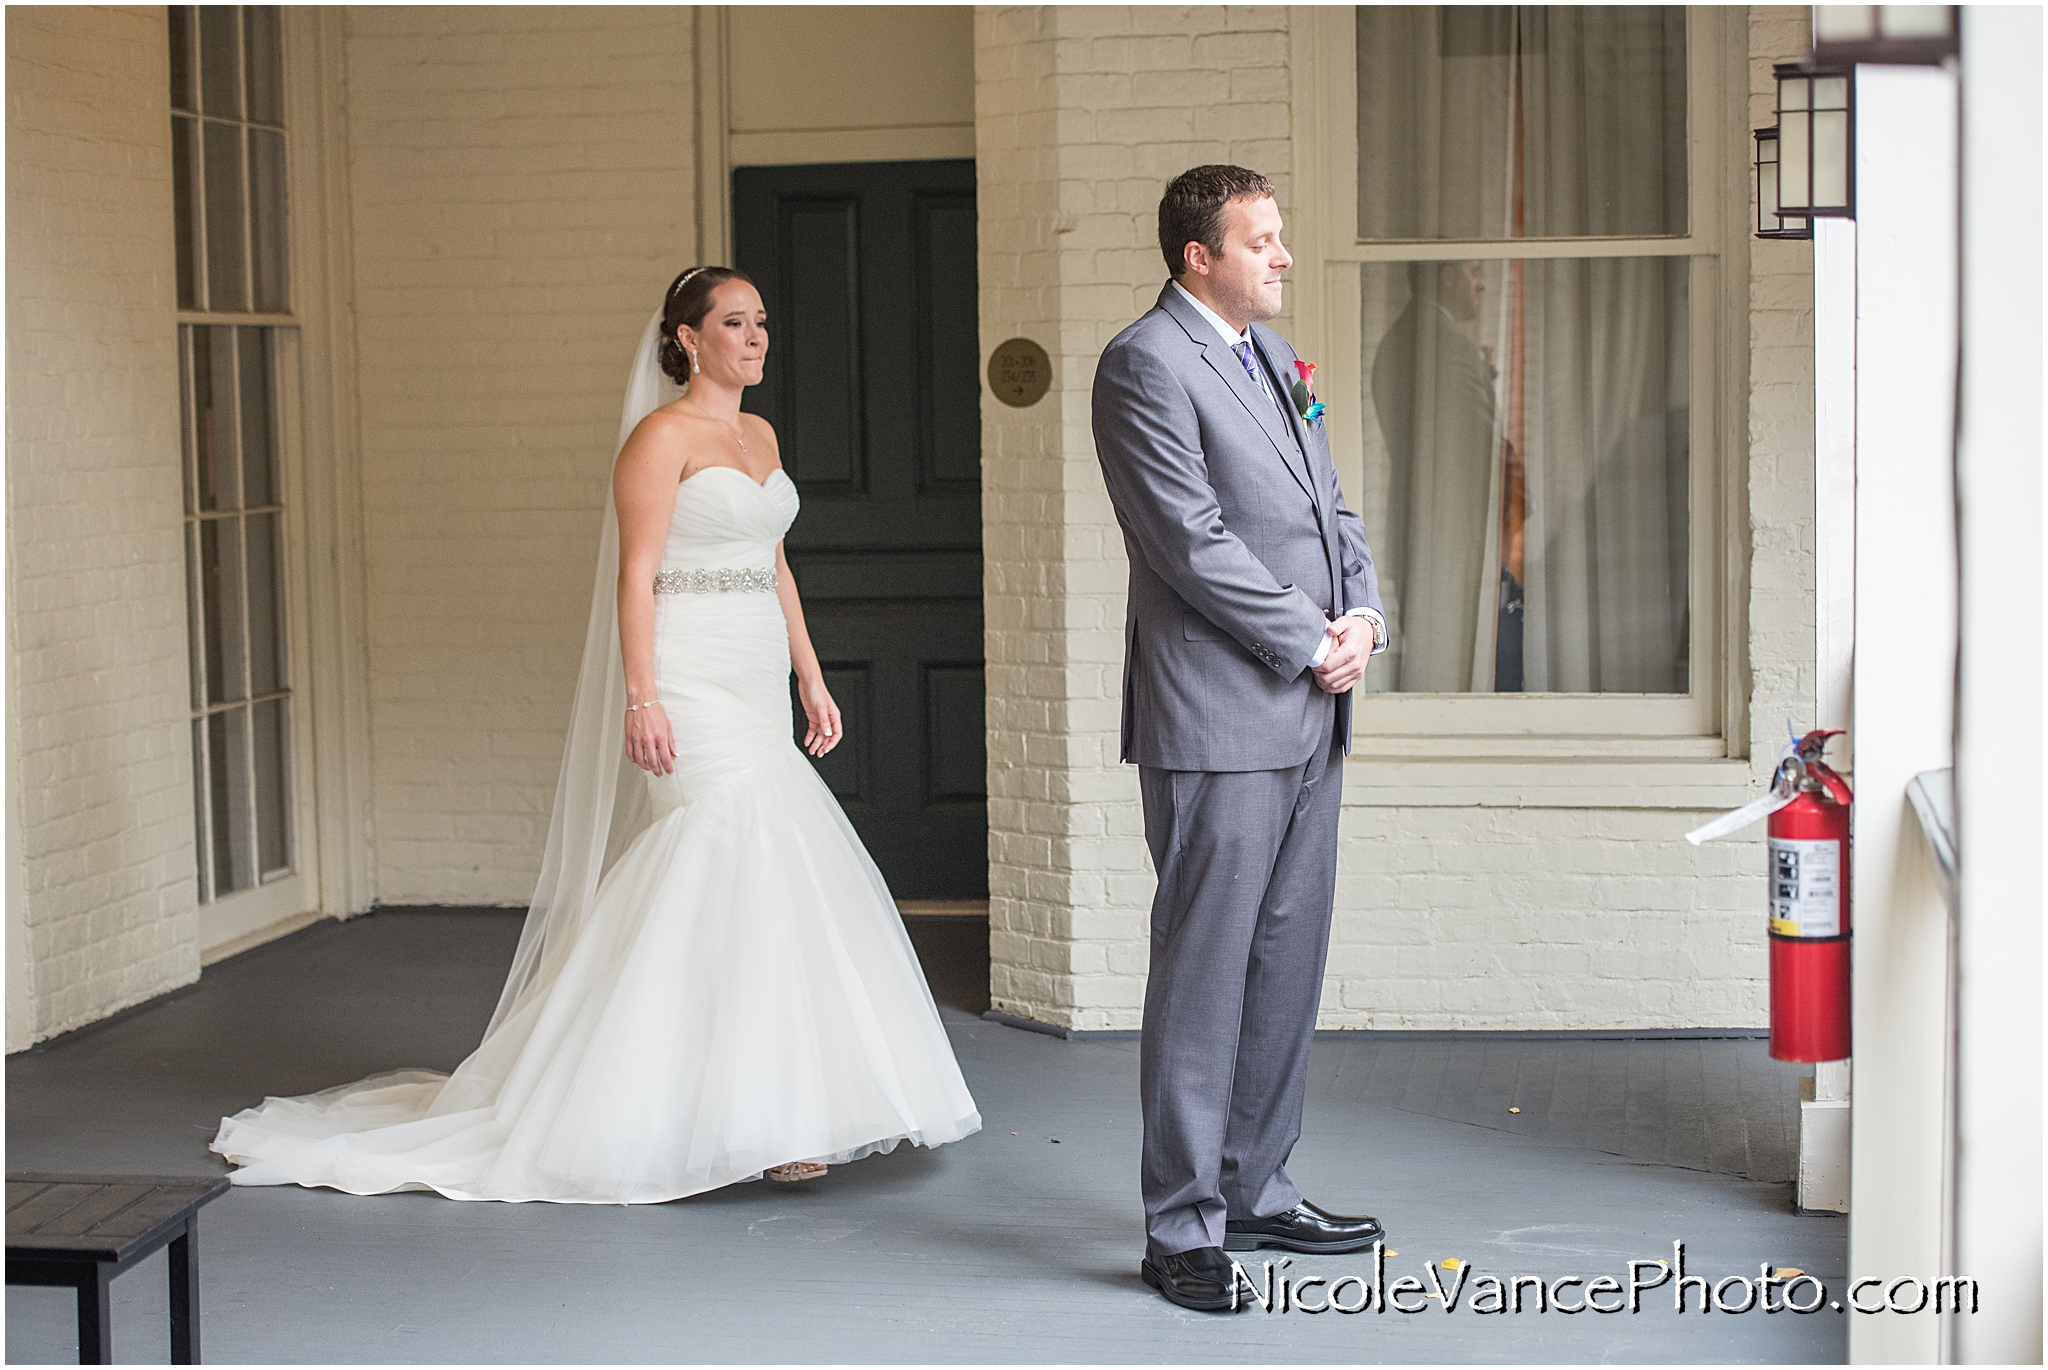 It was an emotional first look!